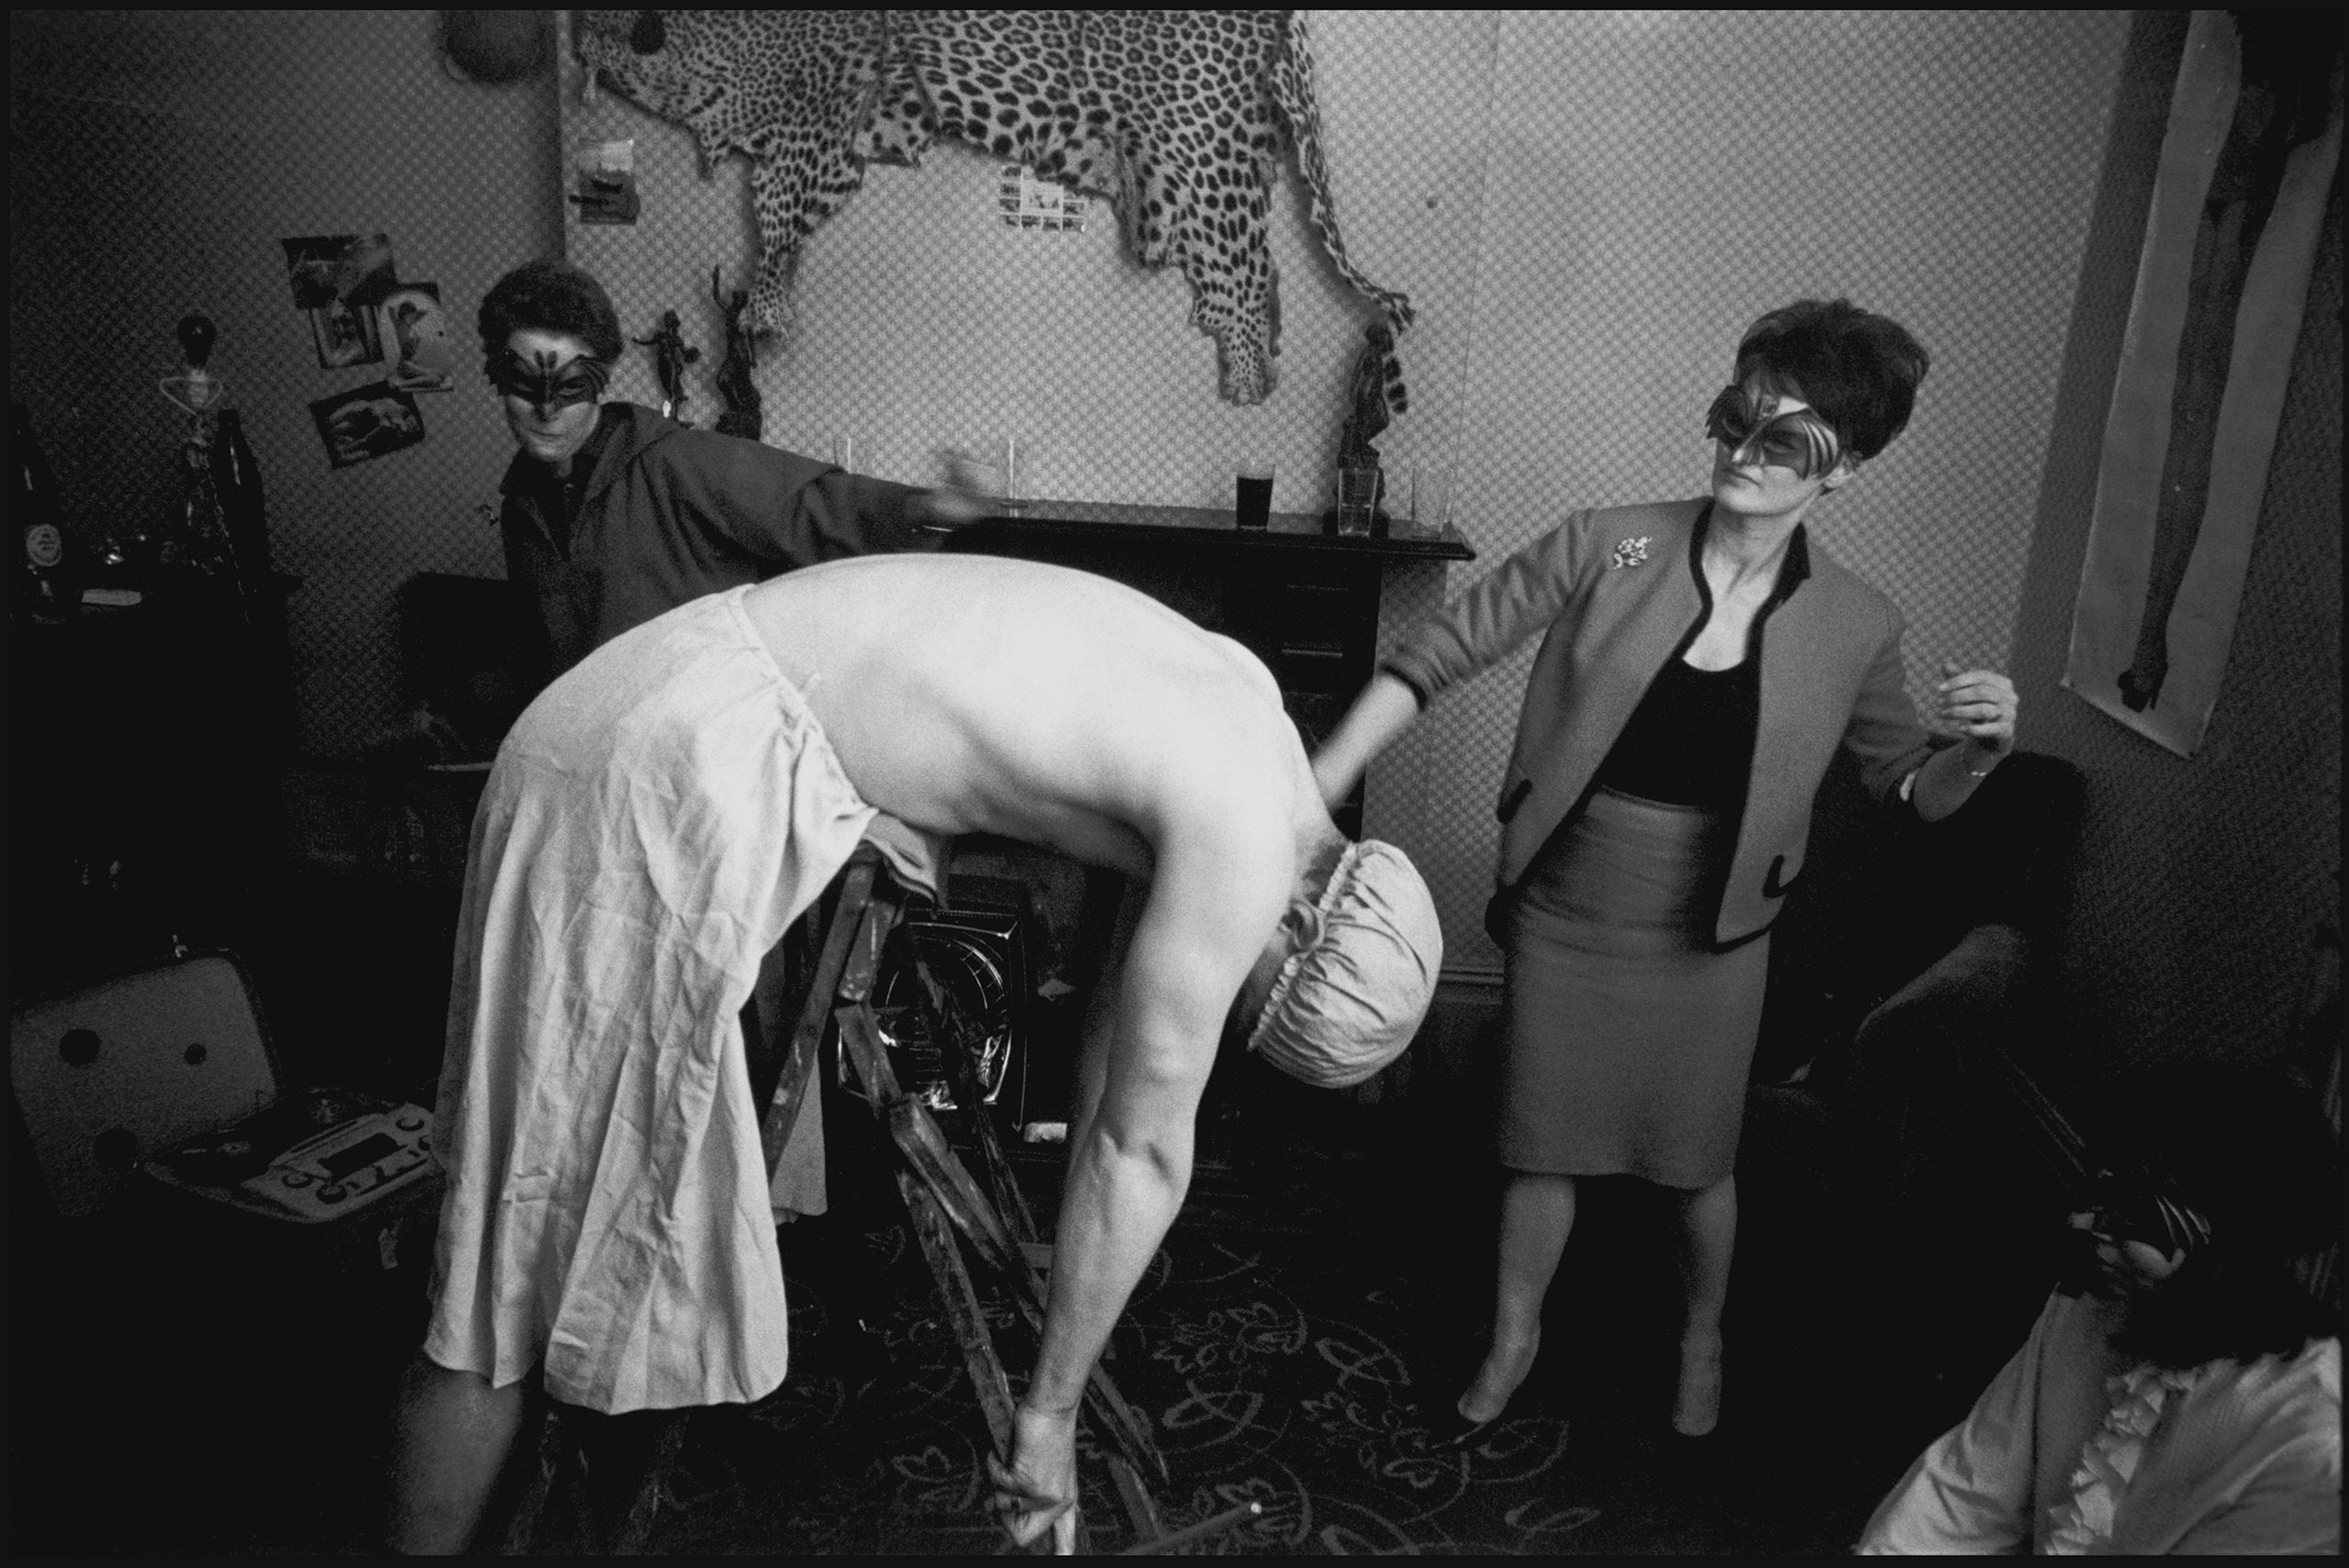 A Lesbian wedding in London. The man  in the photo had apparently insulted one of the women, by falling in love with her and asking her to marry him. He had to be punished. He would come to the wedding for his wipping and bring his own whips. He was photographed in a bathing cap, childs rubber training pants and a petticoat, being whipped by the bridal pair after which the girl he loved walked on his belly in stiletto heels. London, 1965.